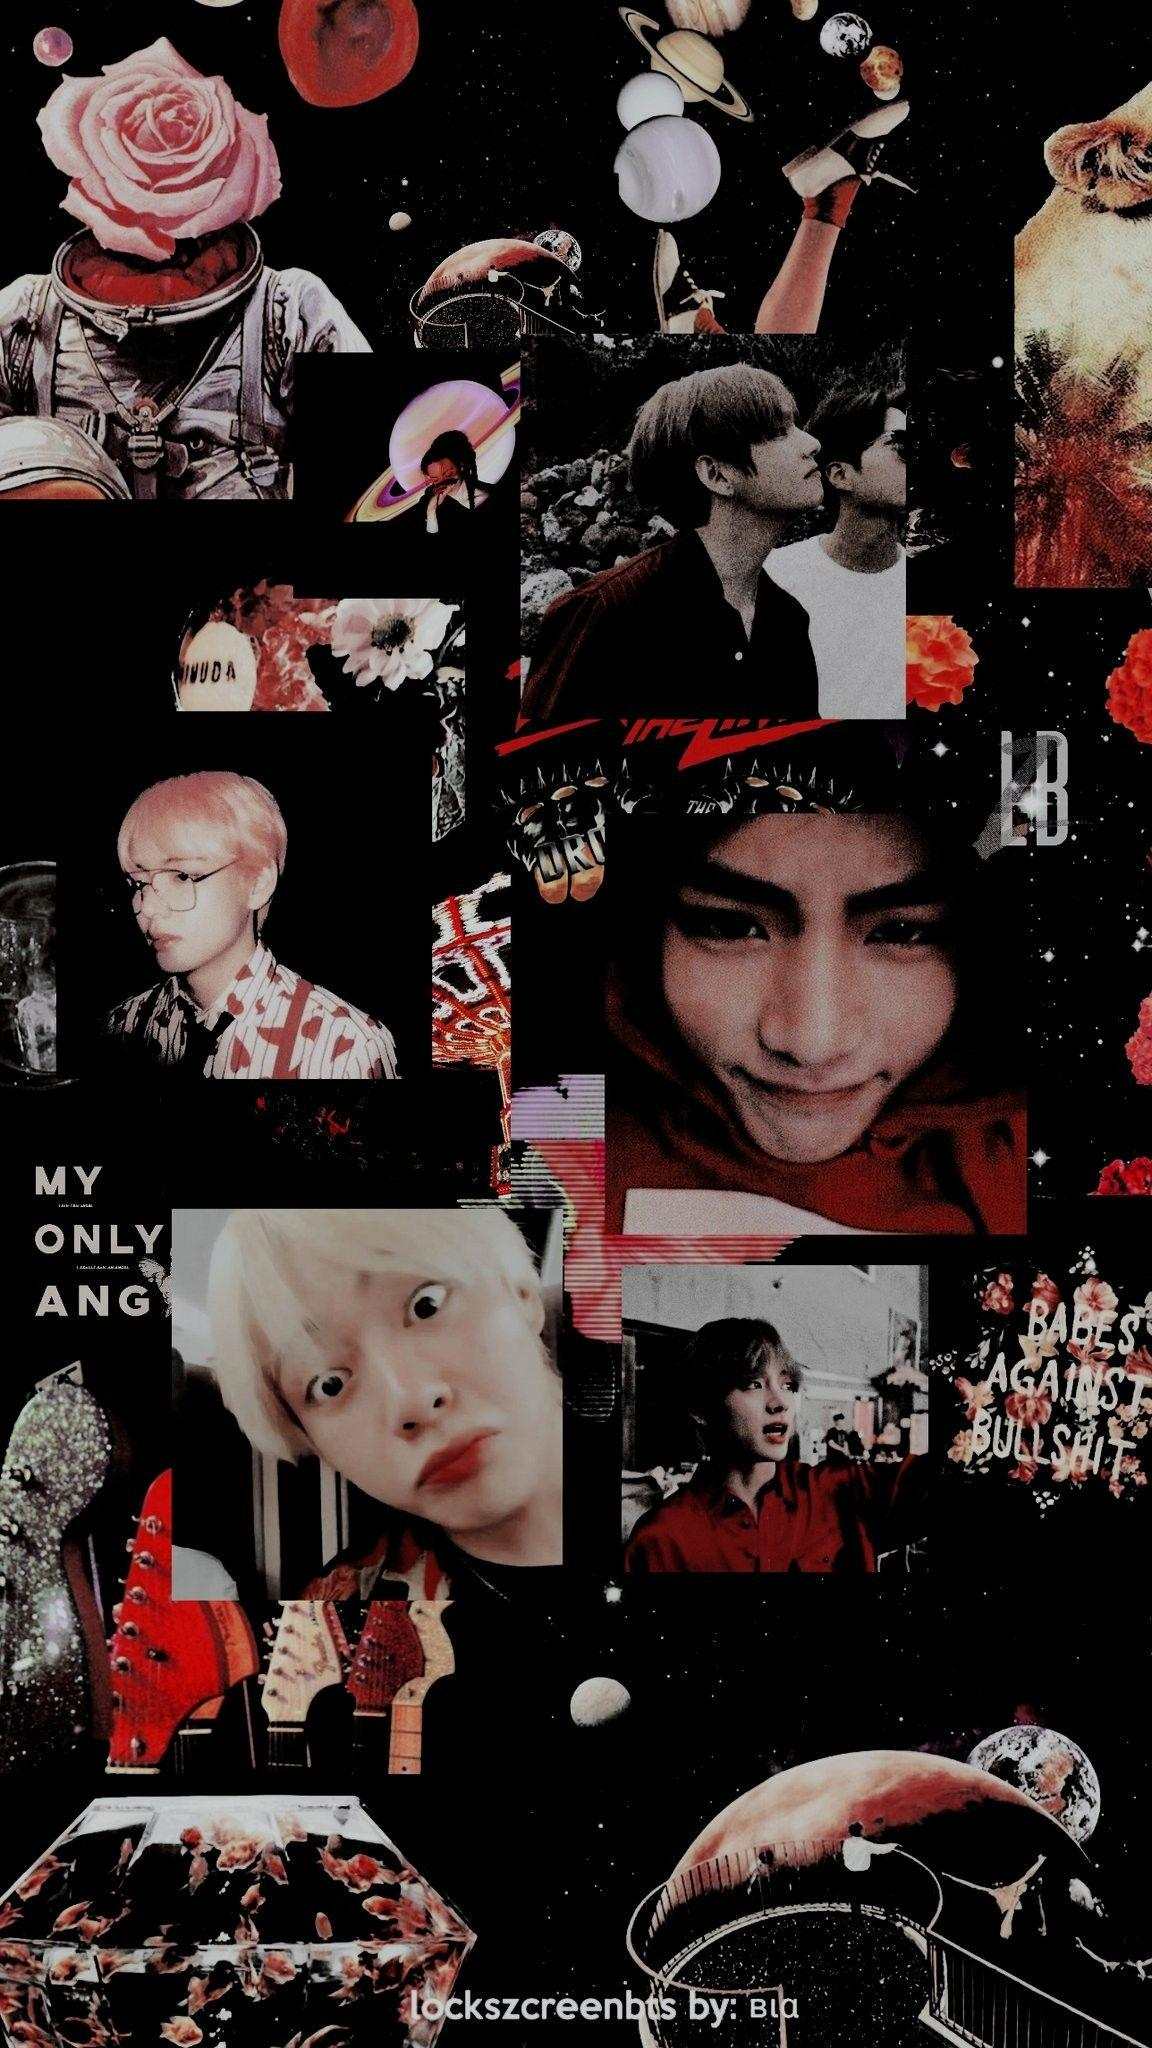 Taehyung Aesthetic Wallpapers / Credits to Twitter